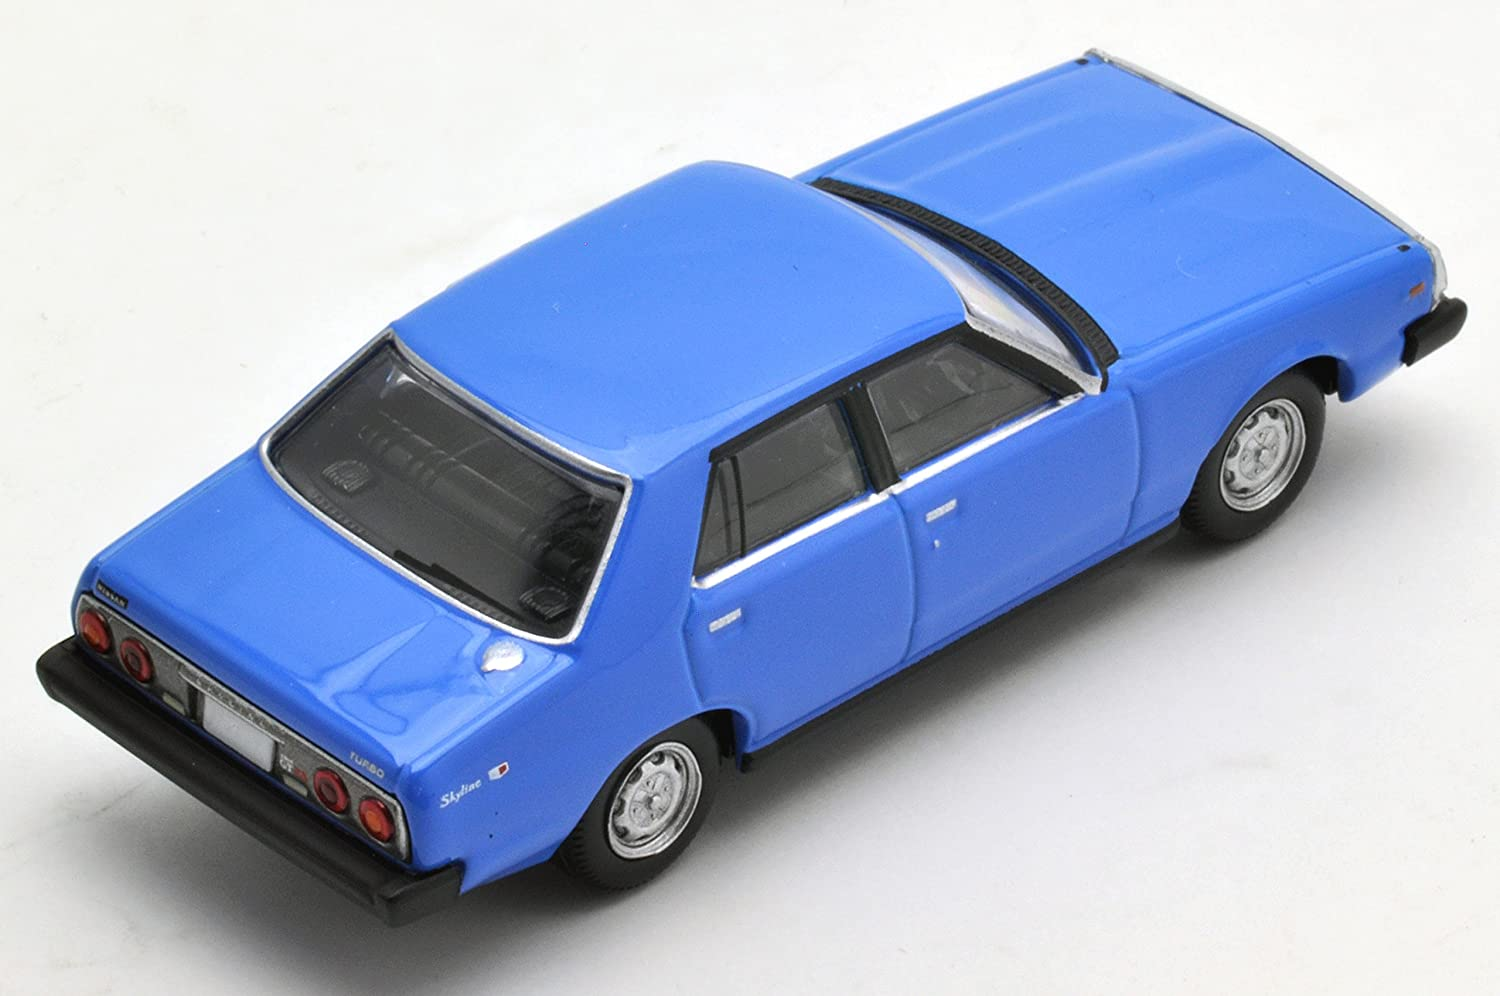 Amazon.com: Tomica Limited Vintage Neo LV-N111a Nissan Skyline 2000 Turbo GT-E · S blue: Toys & Games